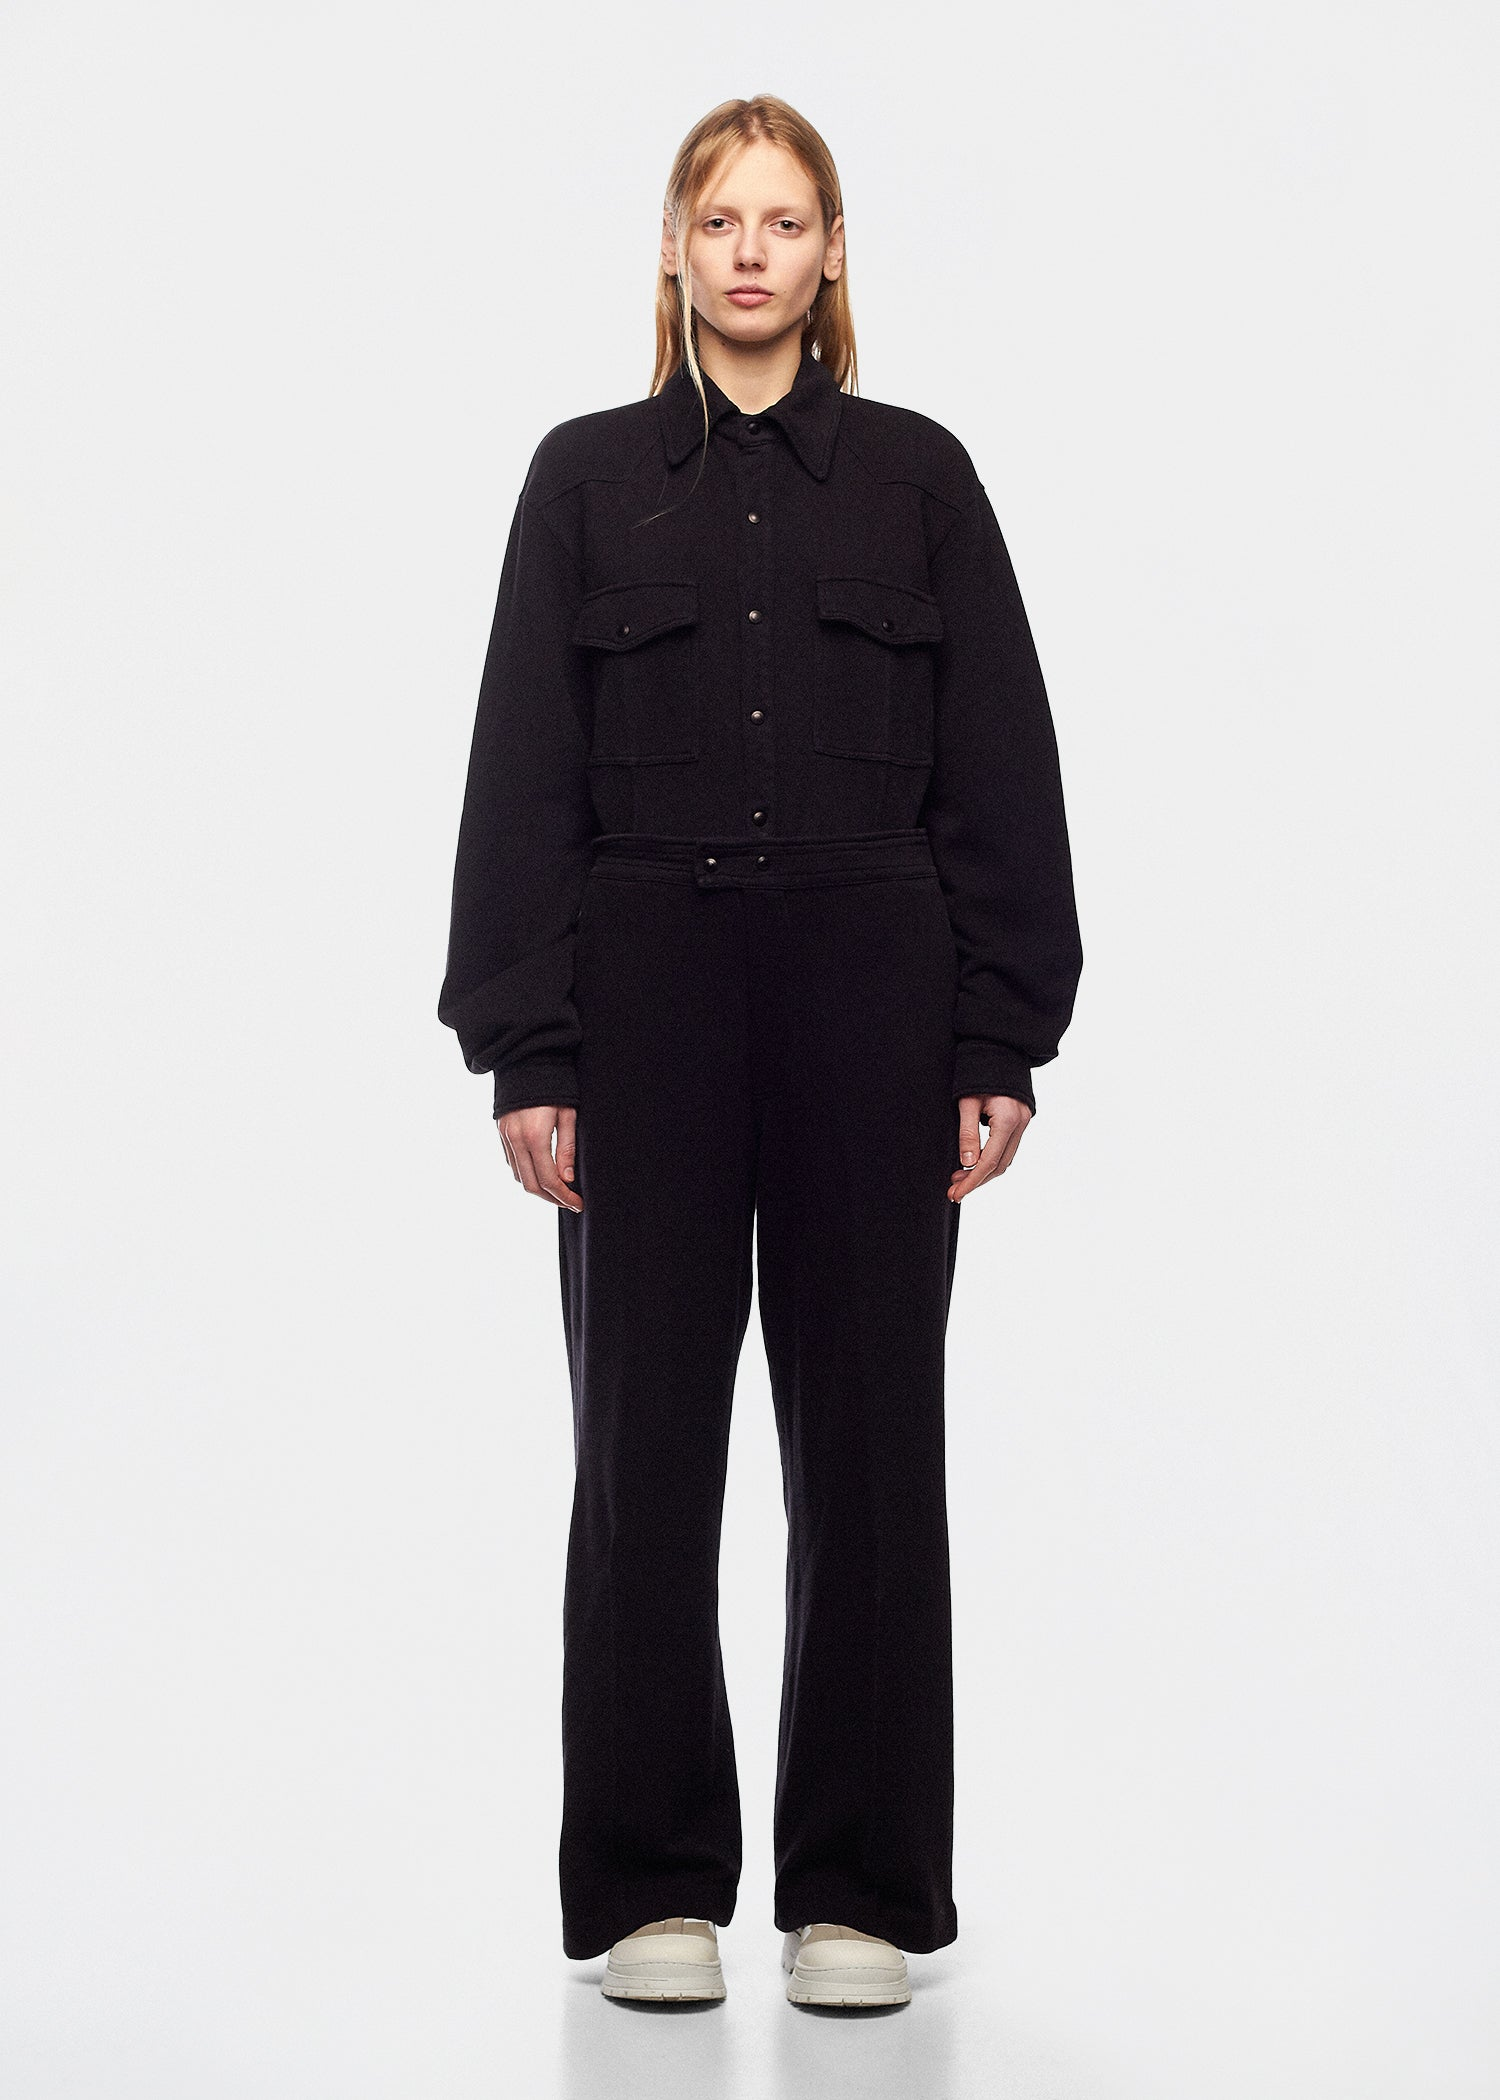 PENELOPE BLACK TROUSERS